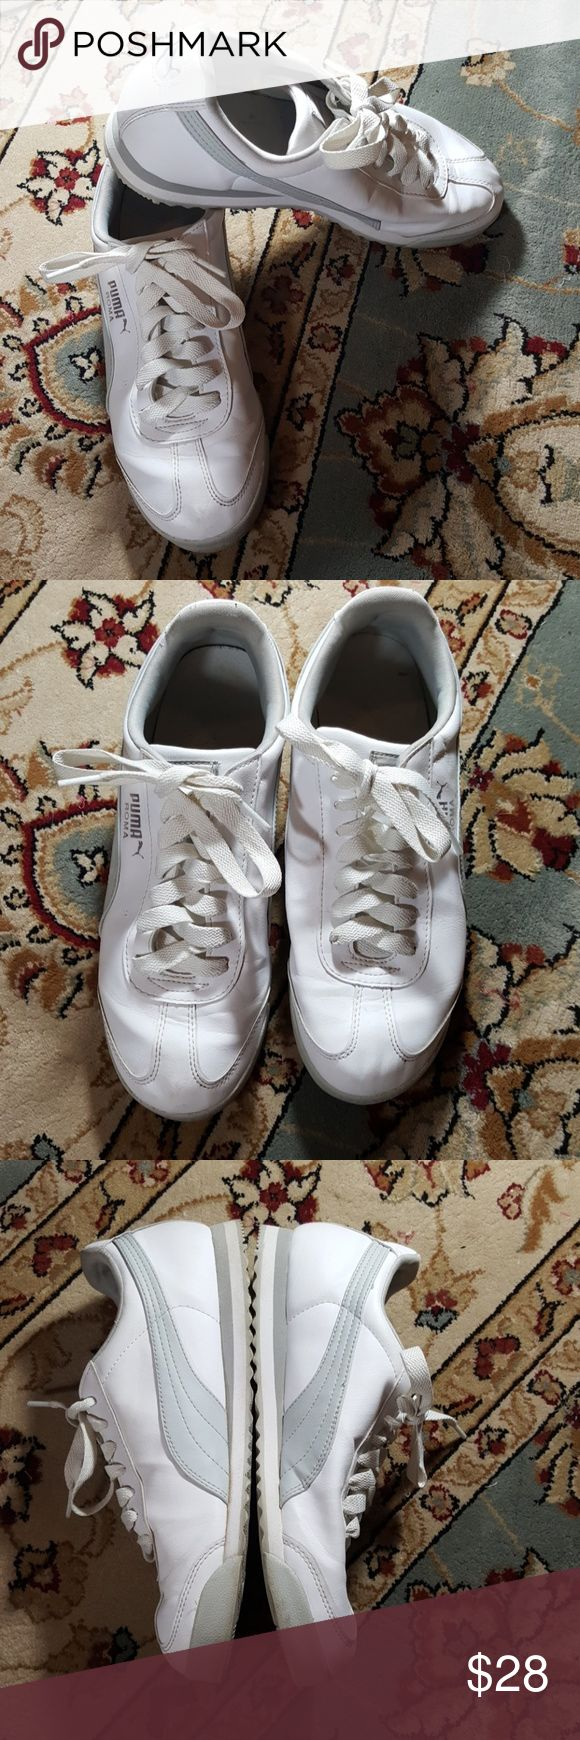 8.5 mens puma sneakers Excellent condition white and grey men's Puma sneakers. Only side of where is creasing minimal and toes and some sock picking inside the shoe very clean Rubber Sole is completely intact shoe laces are in good condition great shoes Puma Shoes Sneakers